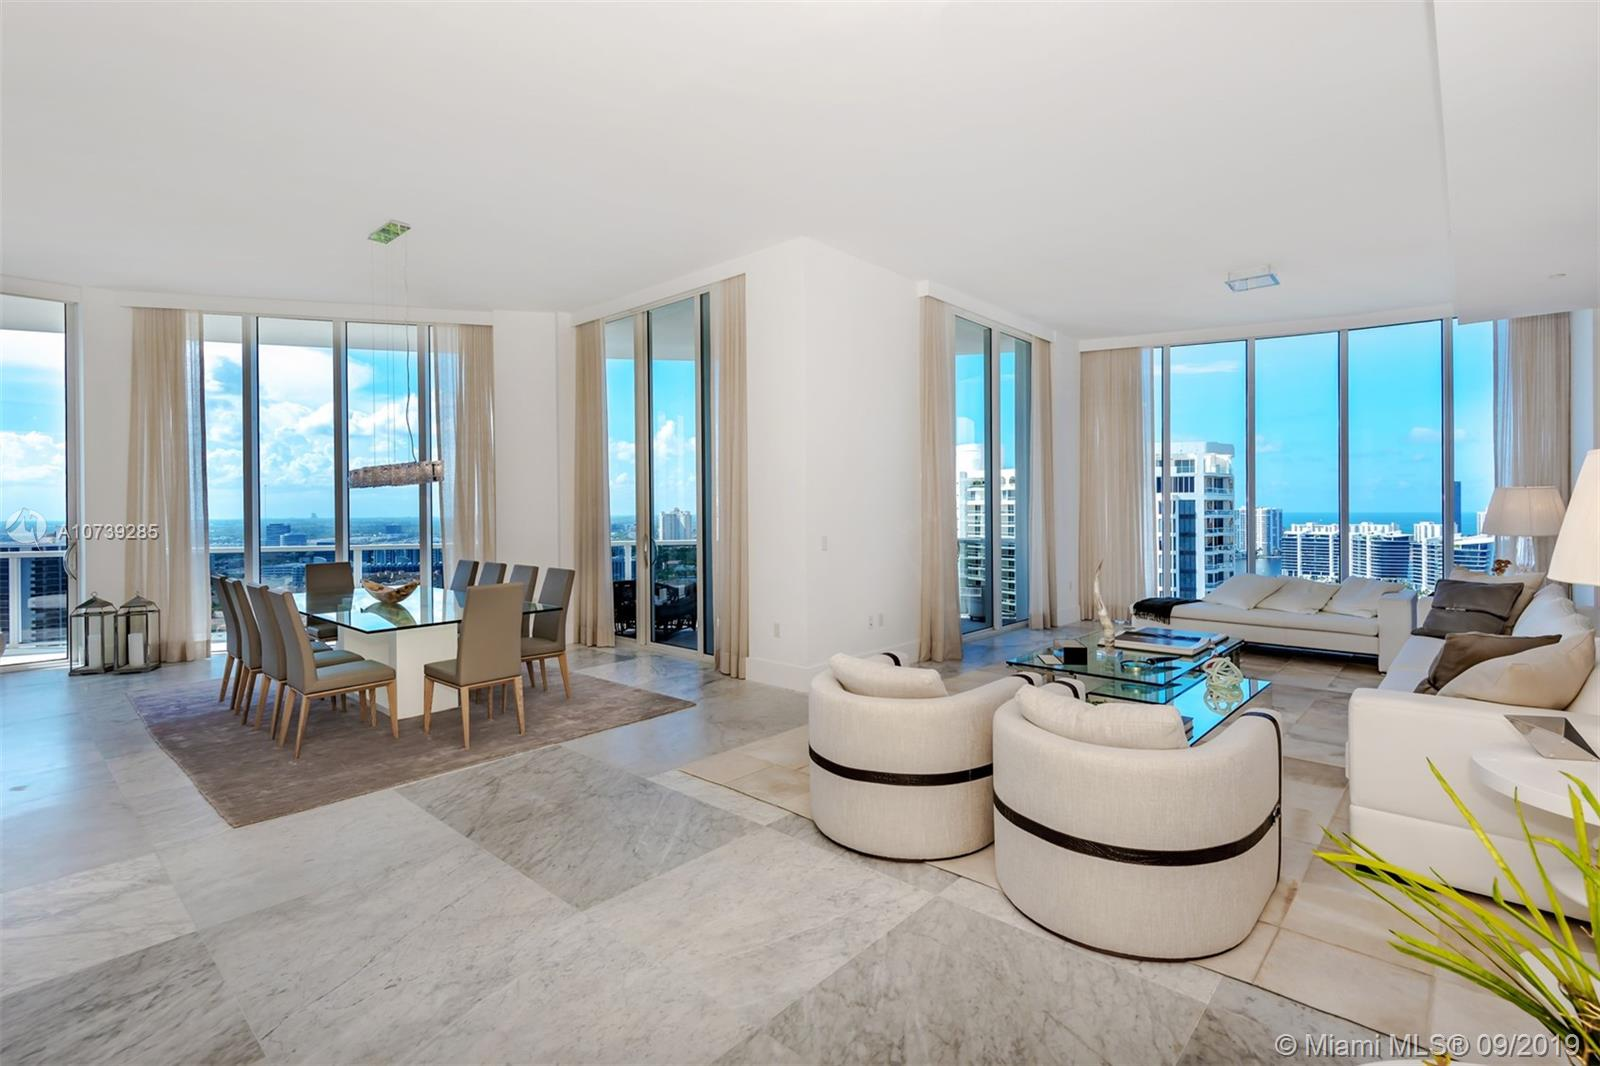 Turn-key Unique Sky Home at Bellini Williams Island Type of property that it sells for itself. Make sure you see my UNBRANDED AMAZING 3D VIRTUAL TOUR ATTACHED +6,000 Square Feet Outstanding master room with his and hers own bath and walking closets, beautiful marble flooring throughout, 180 degrees of balconies and panoramic views. Maid's room, 4 Beds, 6.5 baths, 12 Ft Ceilings its own foyer and private elevator. Endless amenities with State of the Art Spa, two Restaurants, twelve tennis courts, ETC....